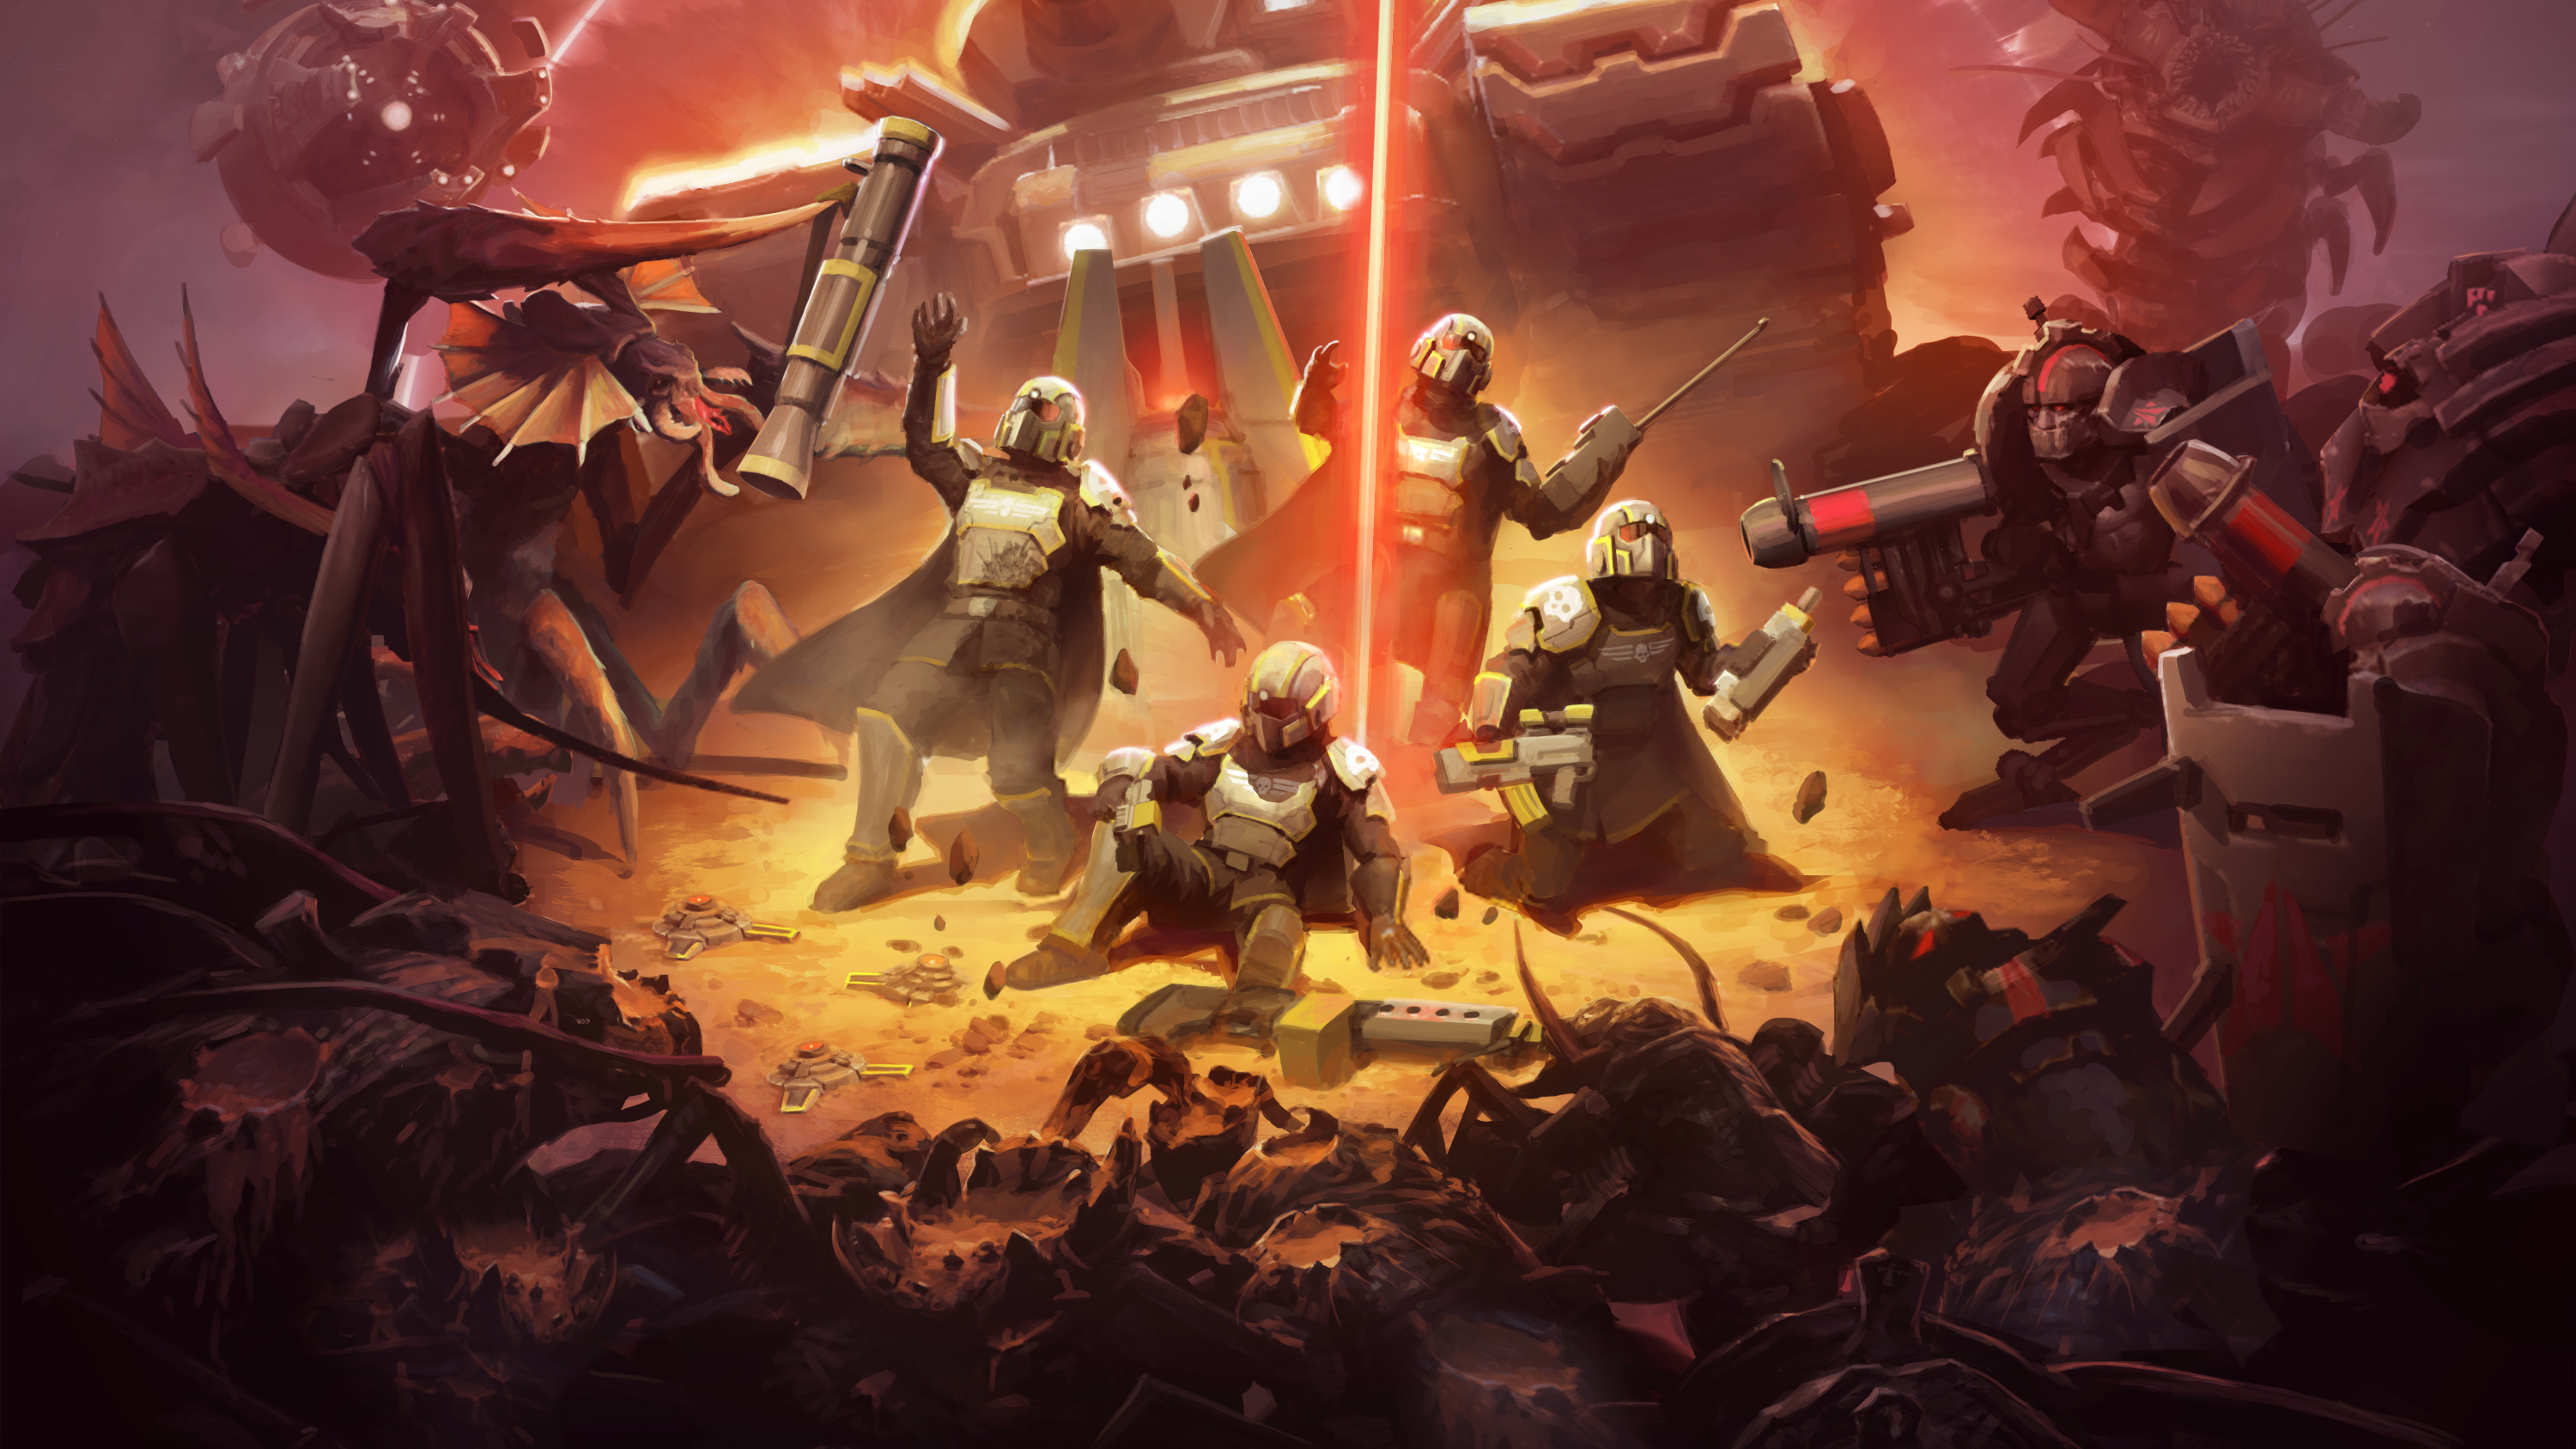 helldivers background wallpaper 68868